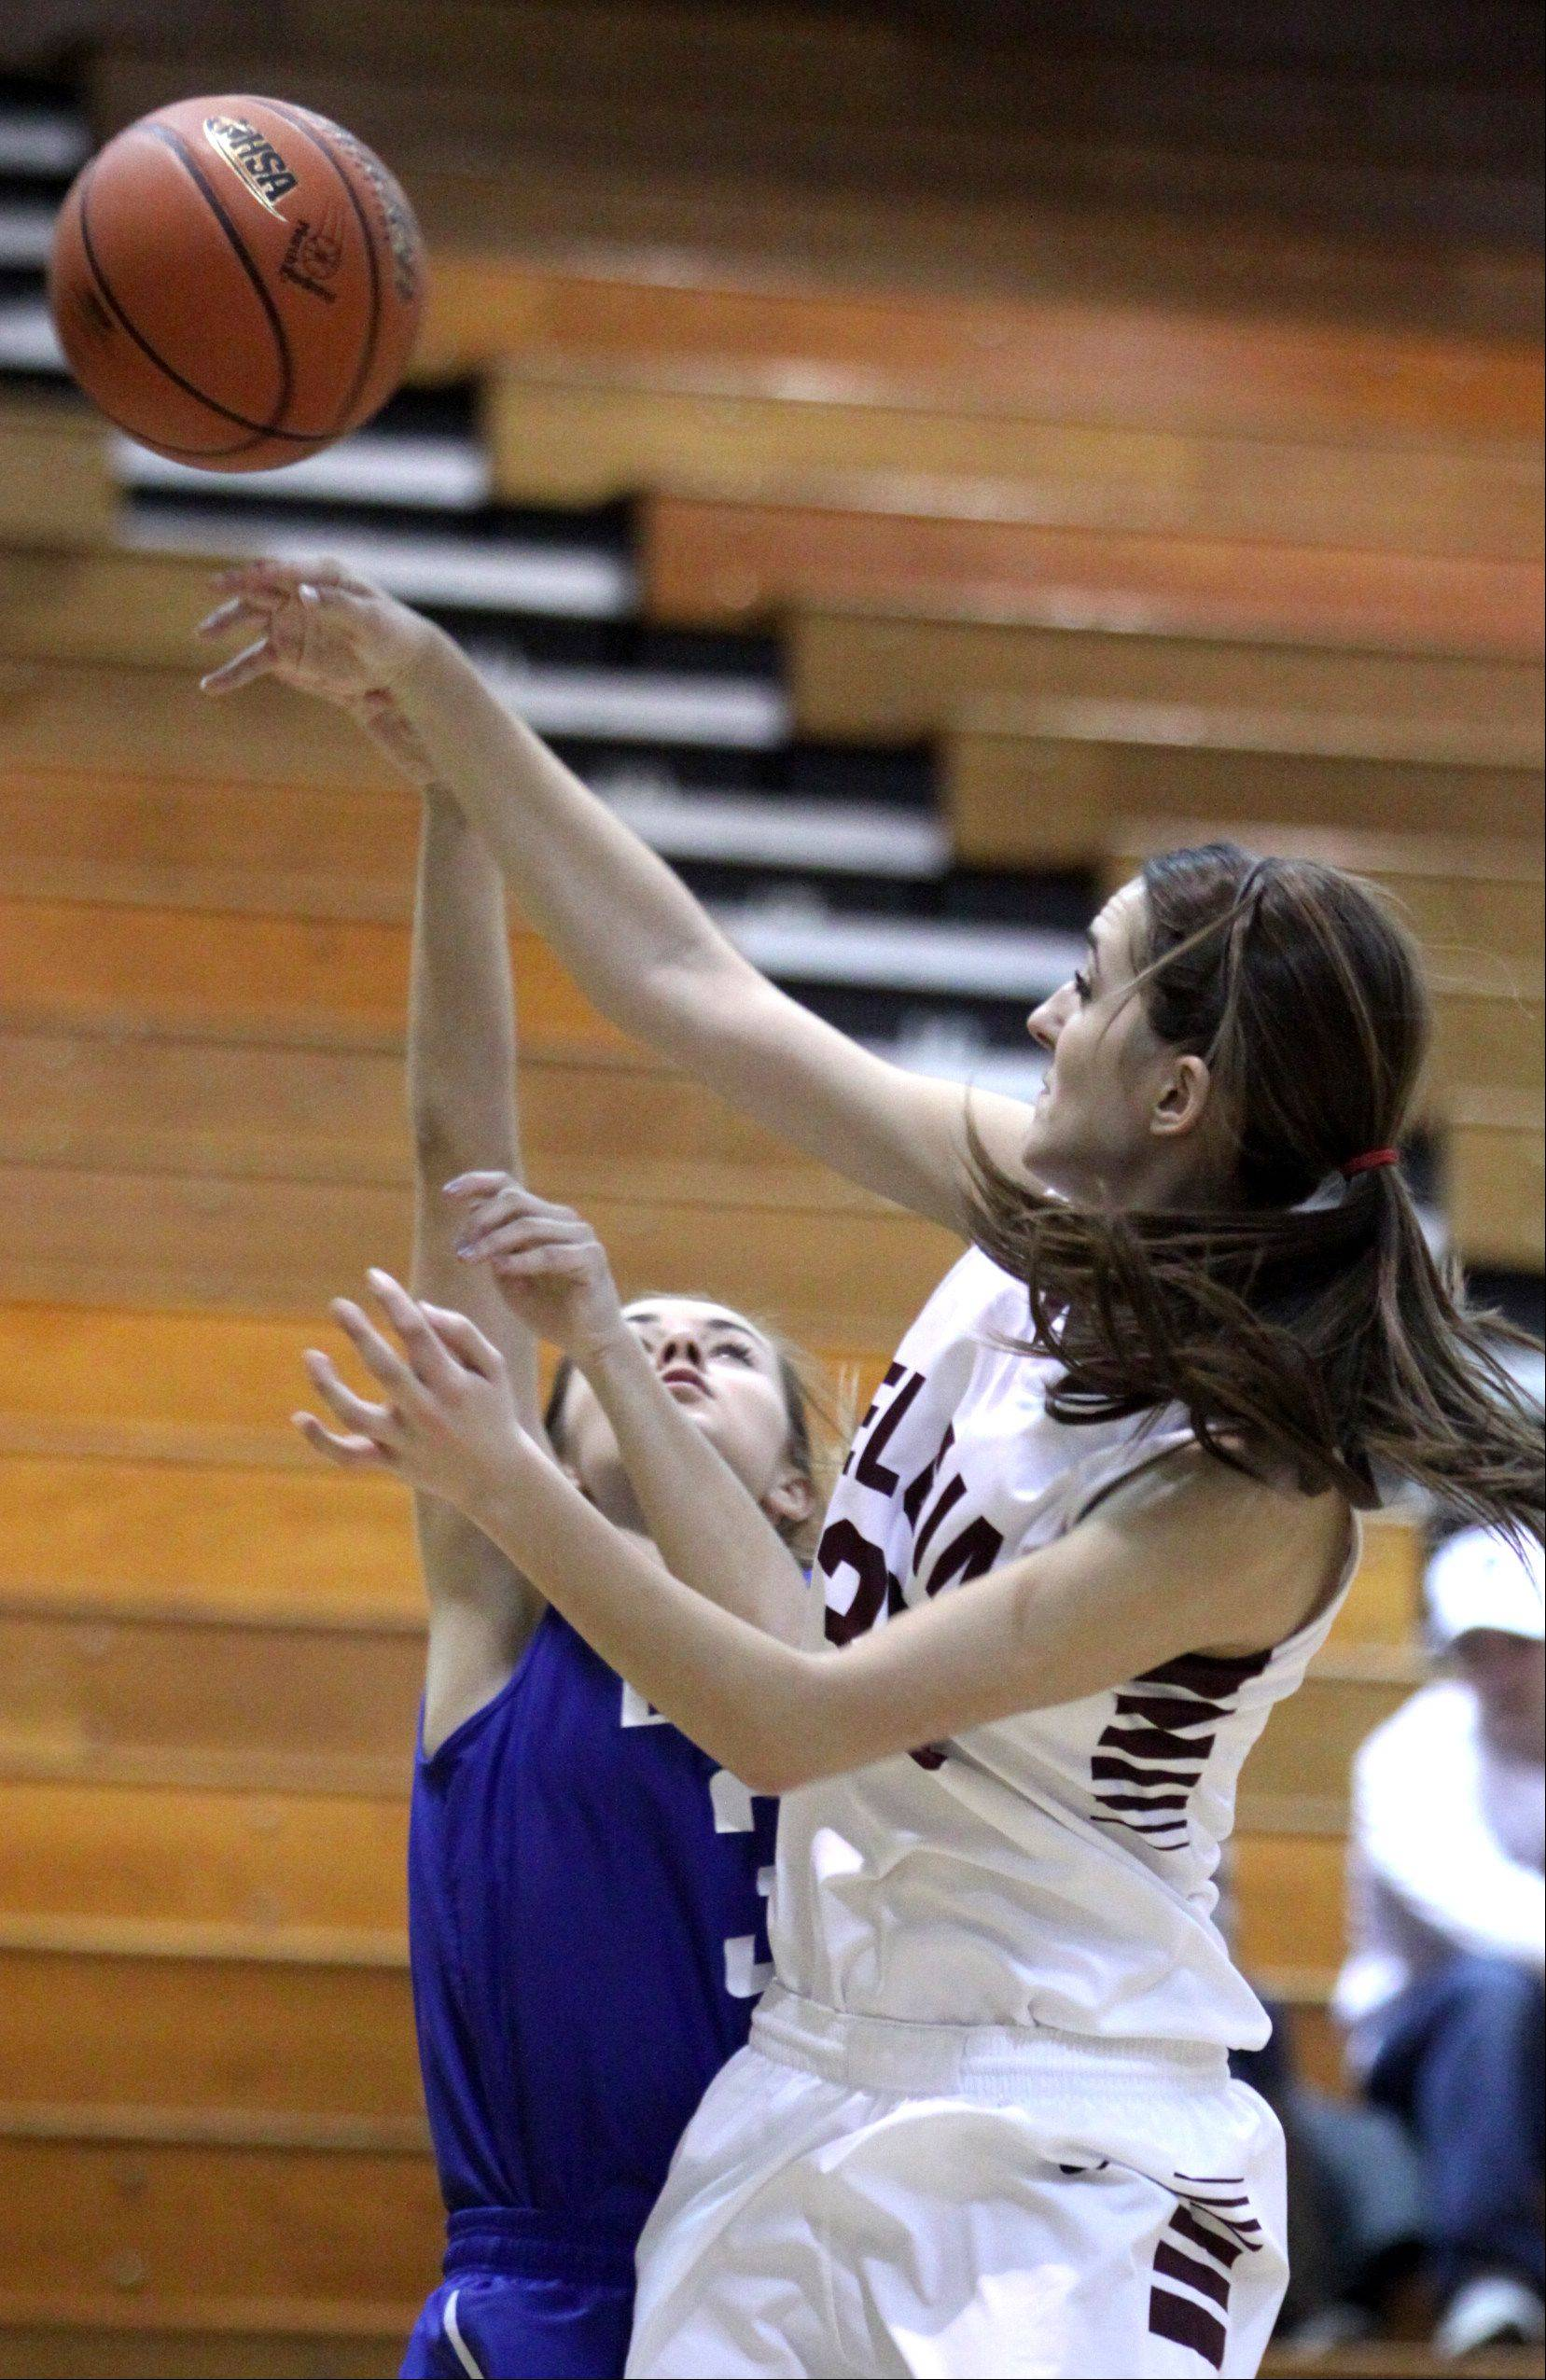 Elgin's Tamara Milosevic, right, blocks Larkin's Samantha Wahl, left.